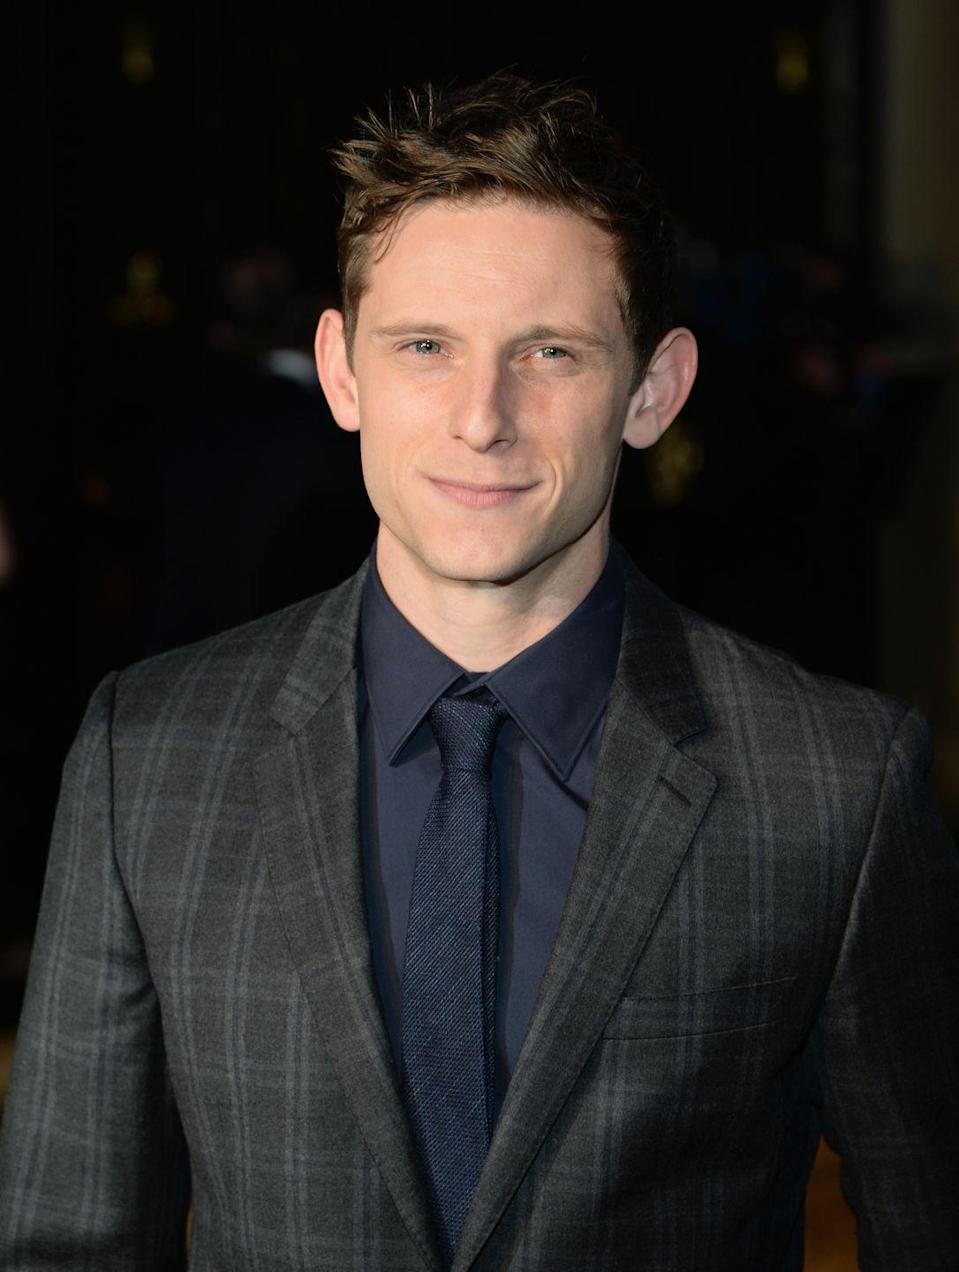 """<p>It's no surprise that the person who played Billy Elliot in the eponymous film can actually dance. But for actor Jamie Bell, playing Billy Elliot on screen mimicked his real life. </p><p>""""It is very impactful, it means everything, and everything kind of comes back to that,"""" <a href=""""https://www.theguardian.com/culture/2011/mar/13/jamie-bell-interview"""" rel=""""nofollow noopener"""" target=""""_blank"""" data-ylk=""""slk:he told The Guardian"""" class=""""link rapid-noclick-resp"""">he told <em>The Guardian</em></a>. """"That wasn't really acting to me. That was my life. I'd put ballet shoes down my pants to hide them from my friends. I'd done all this before. So the Bafta doesn't feel like an achievement. The achievement was getting the role. But I consider that to be extremely lucky.""""</p>"""